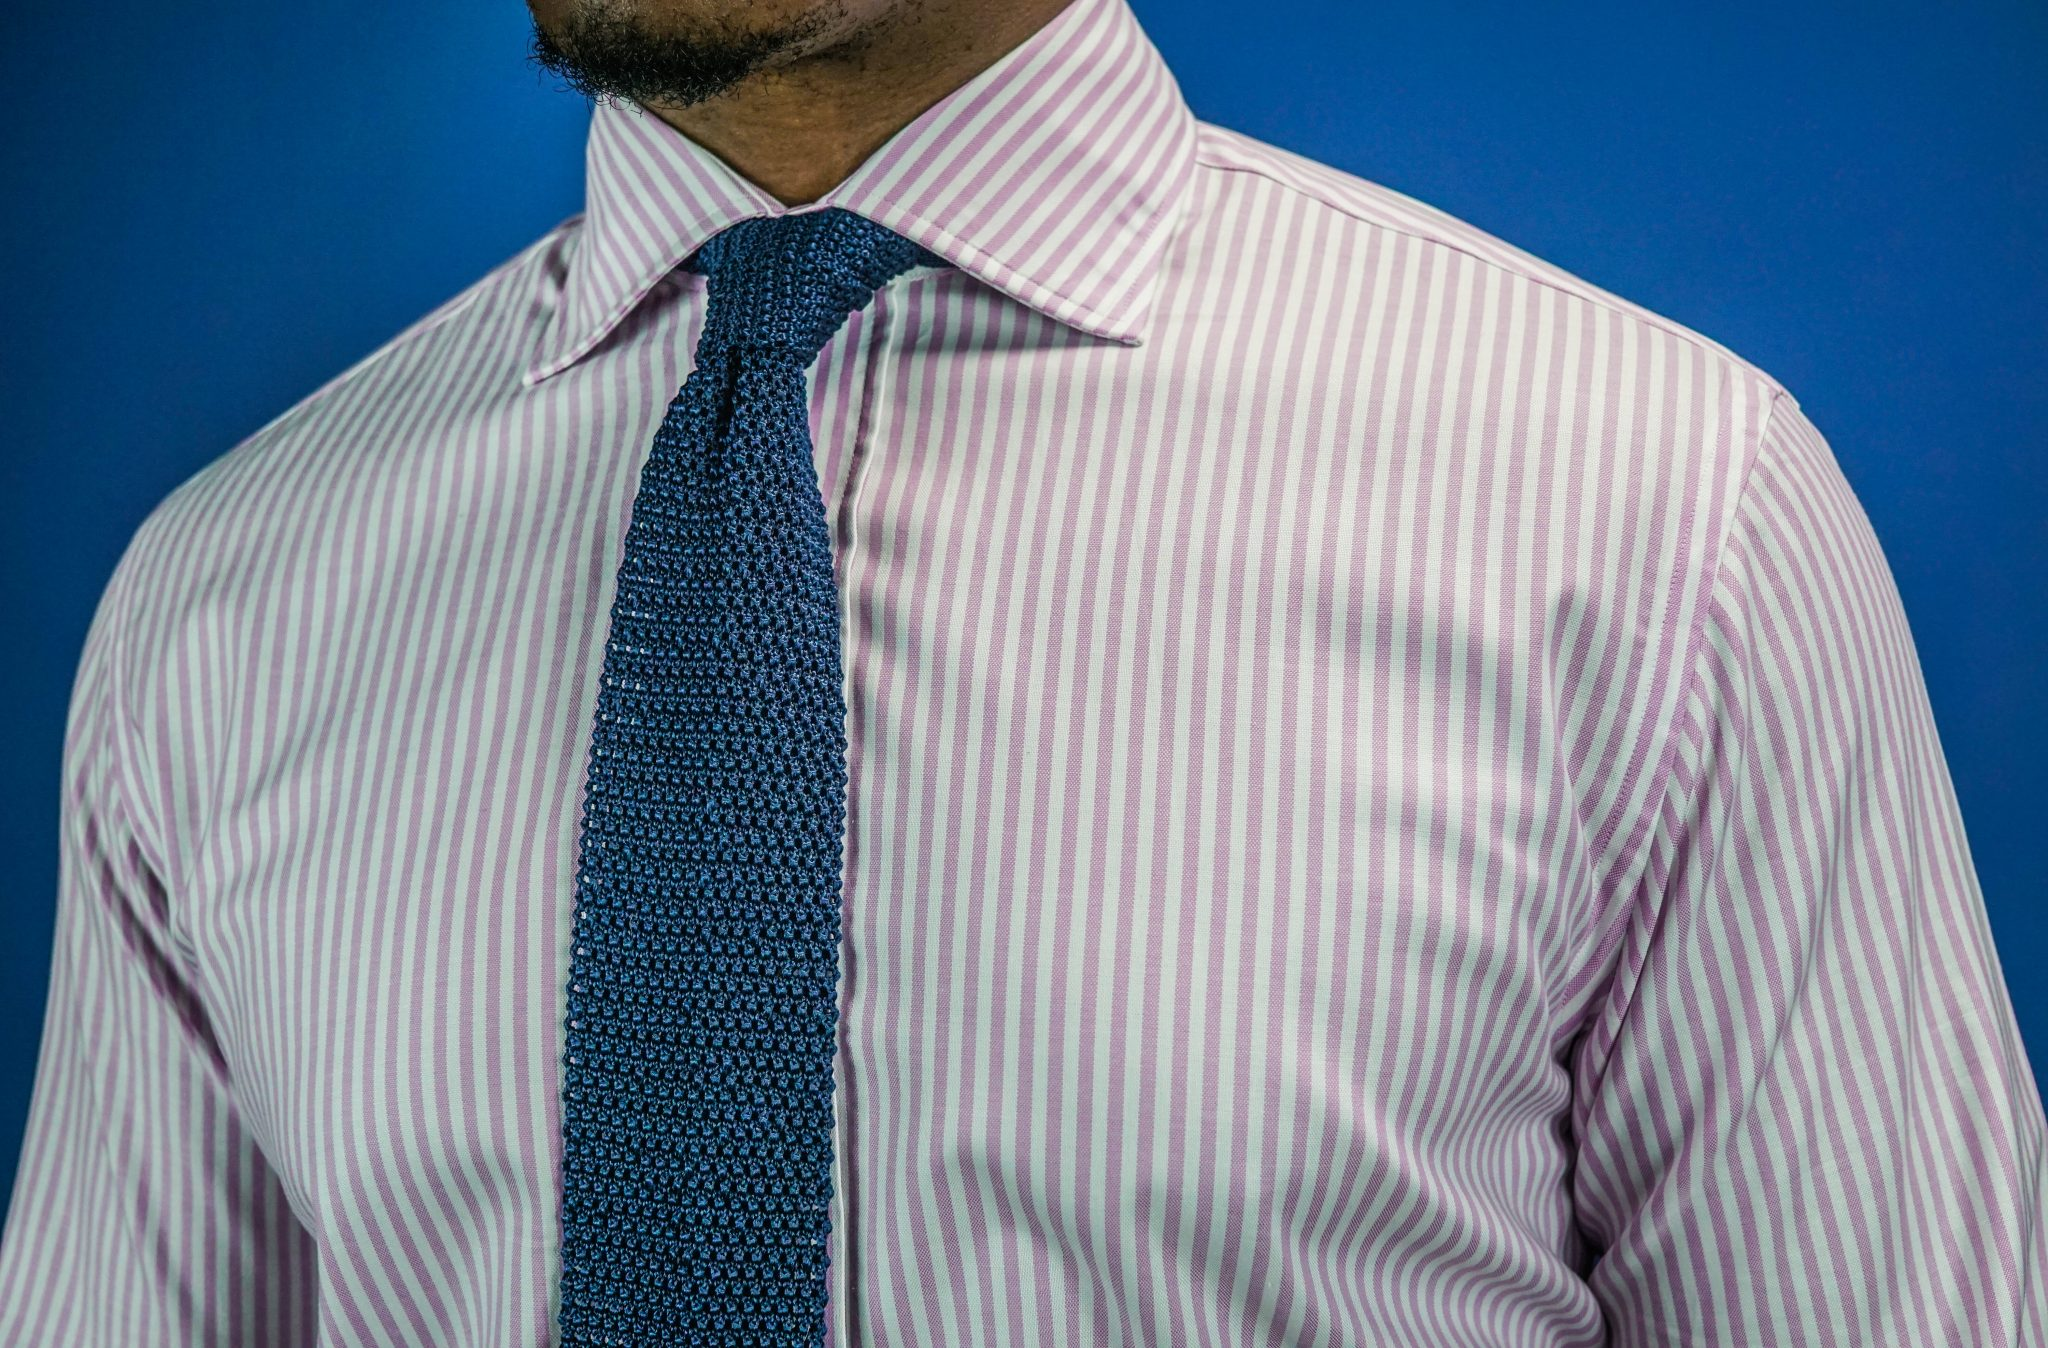 deo veritas-custom dress shirt-pink-white-stripe-shirt-silk knit tie-review-3